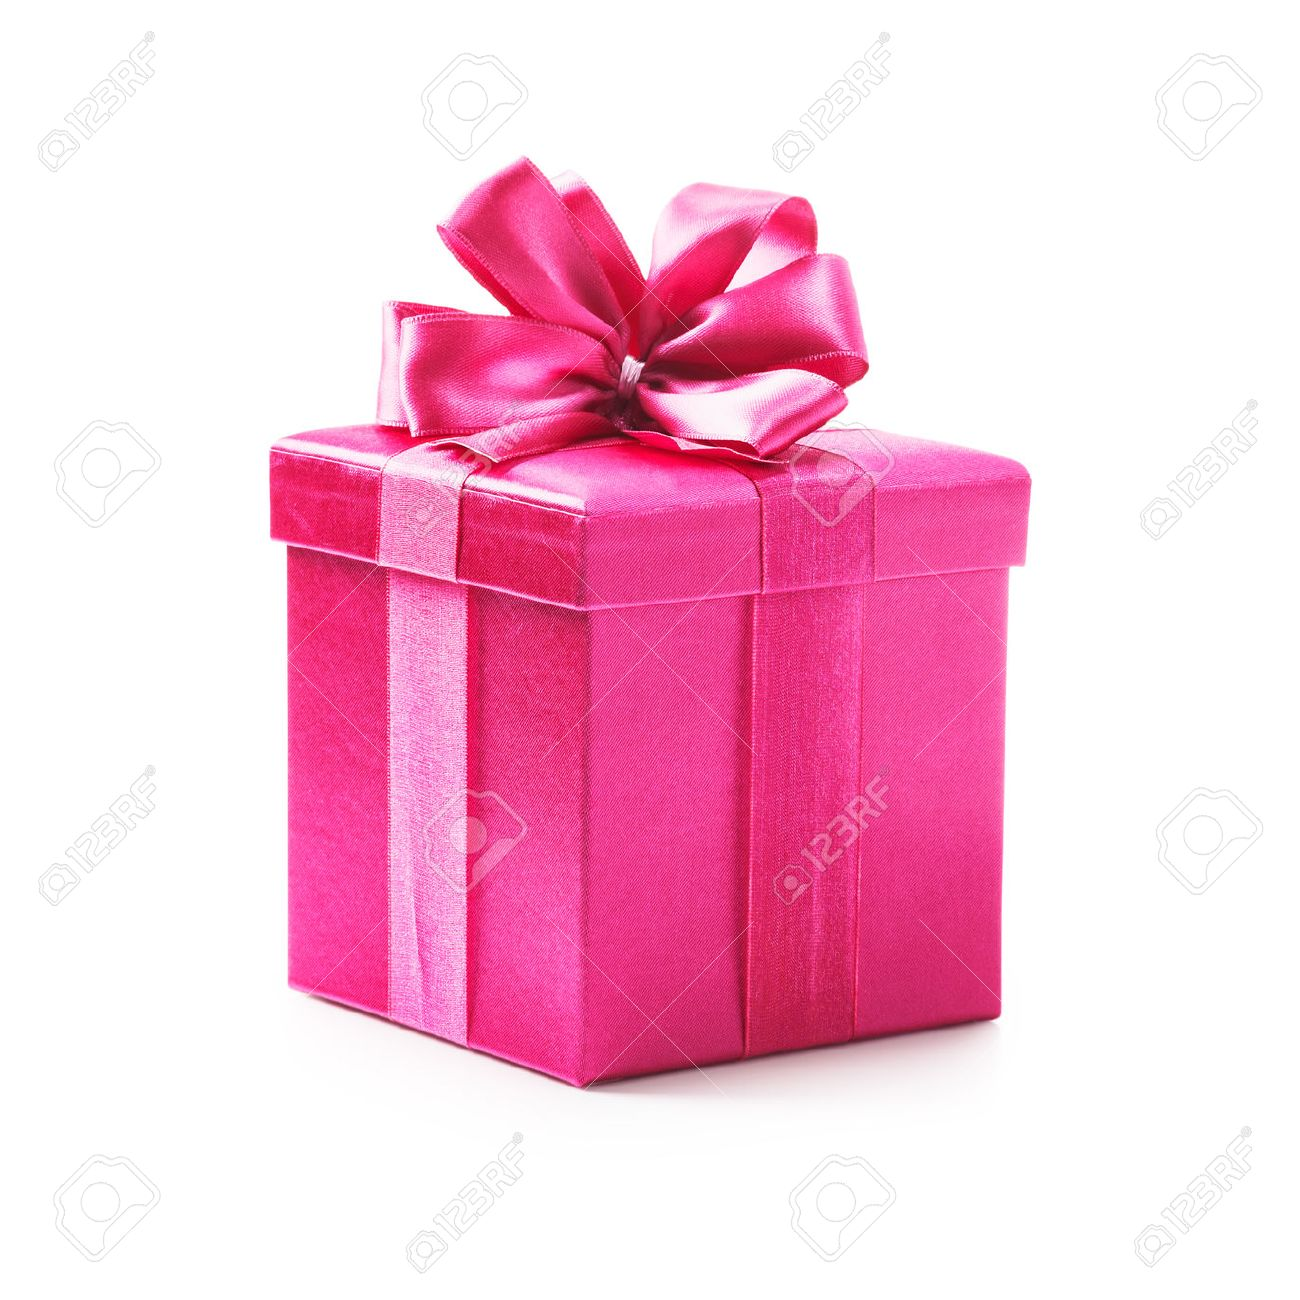 Pink Gift Box With Ribbon Bow Holiday Present Object Isolated